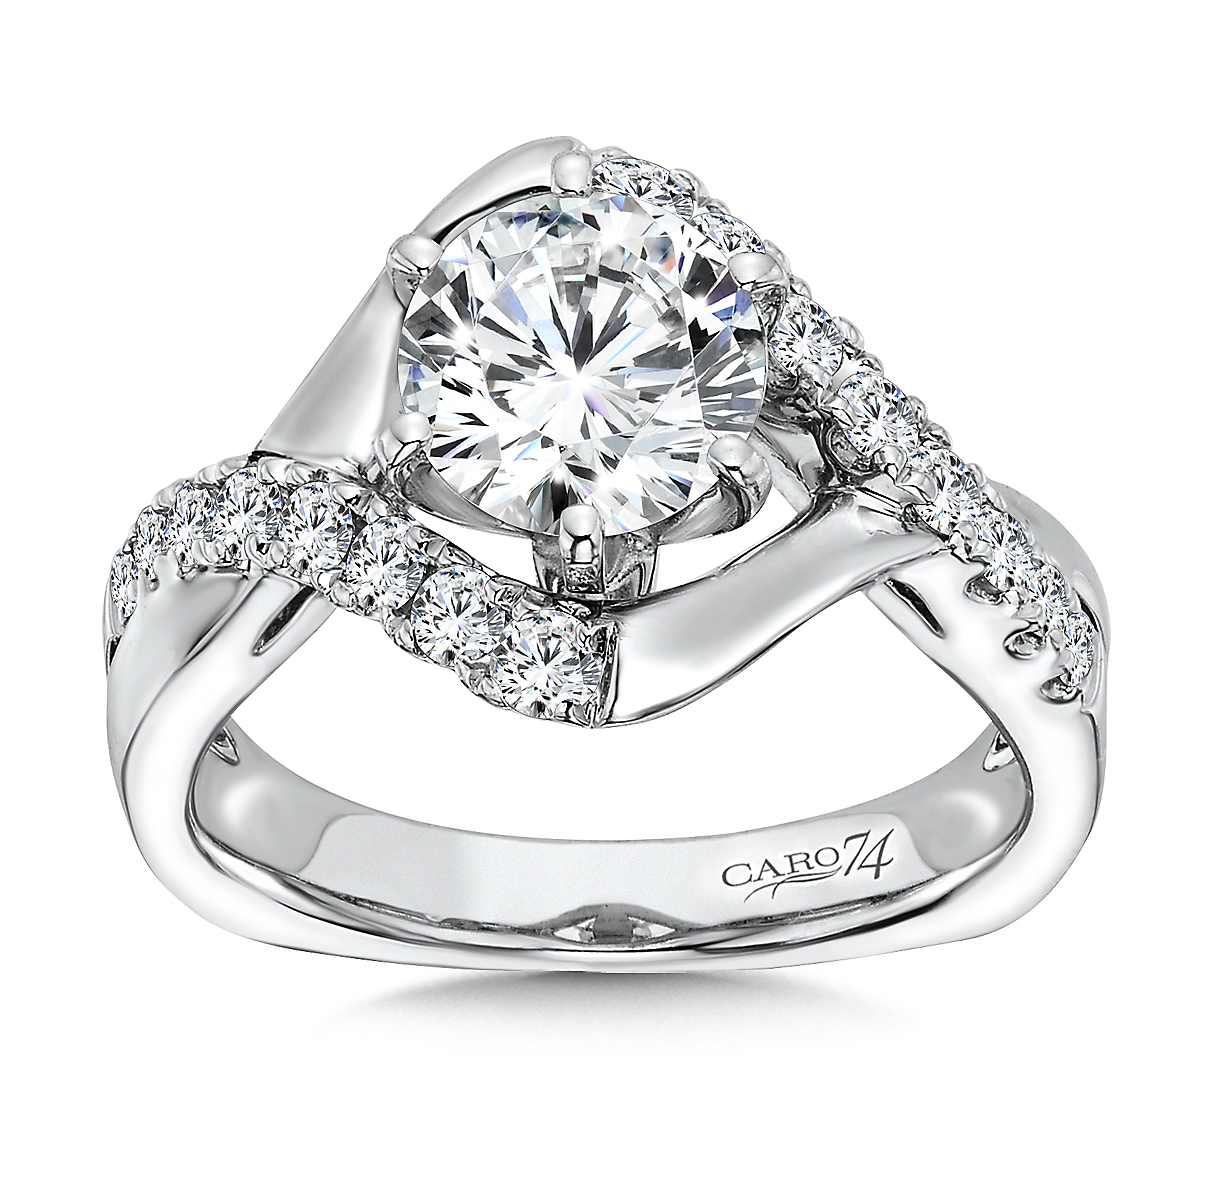 Wholesale Engagement Rings Dallas 1 1, Shira Diamonds